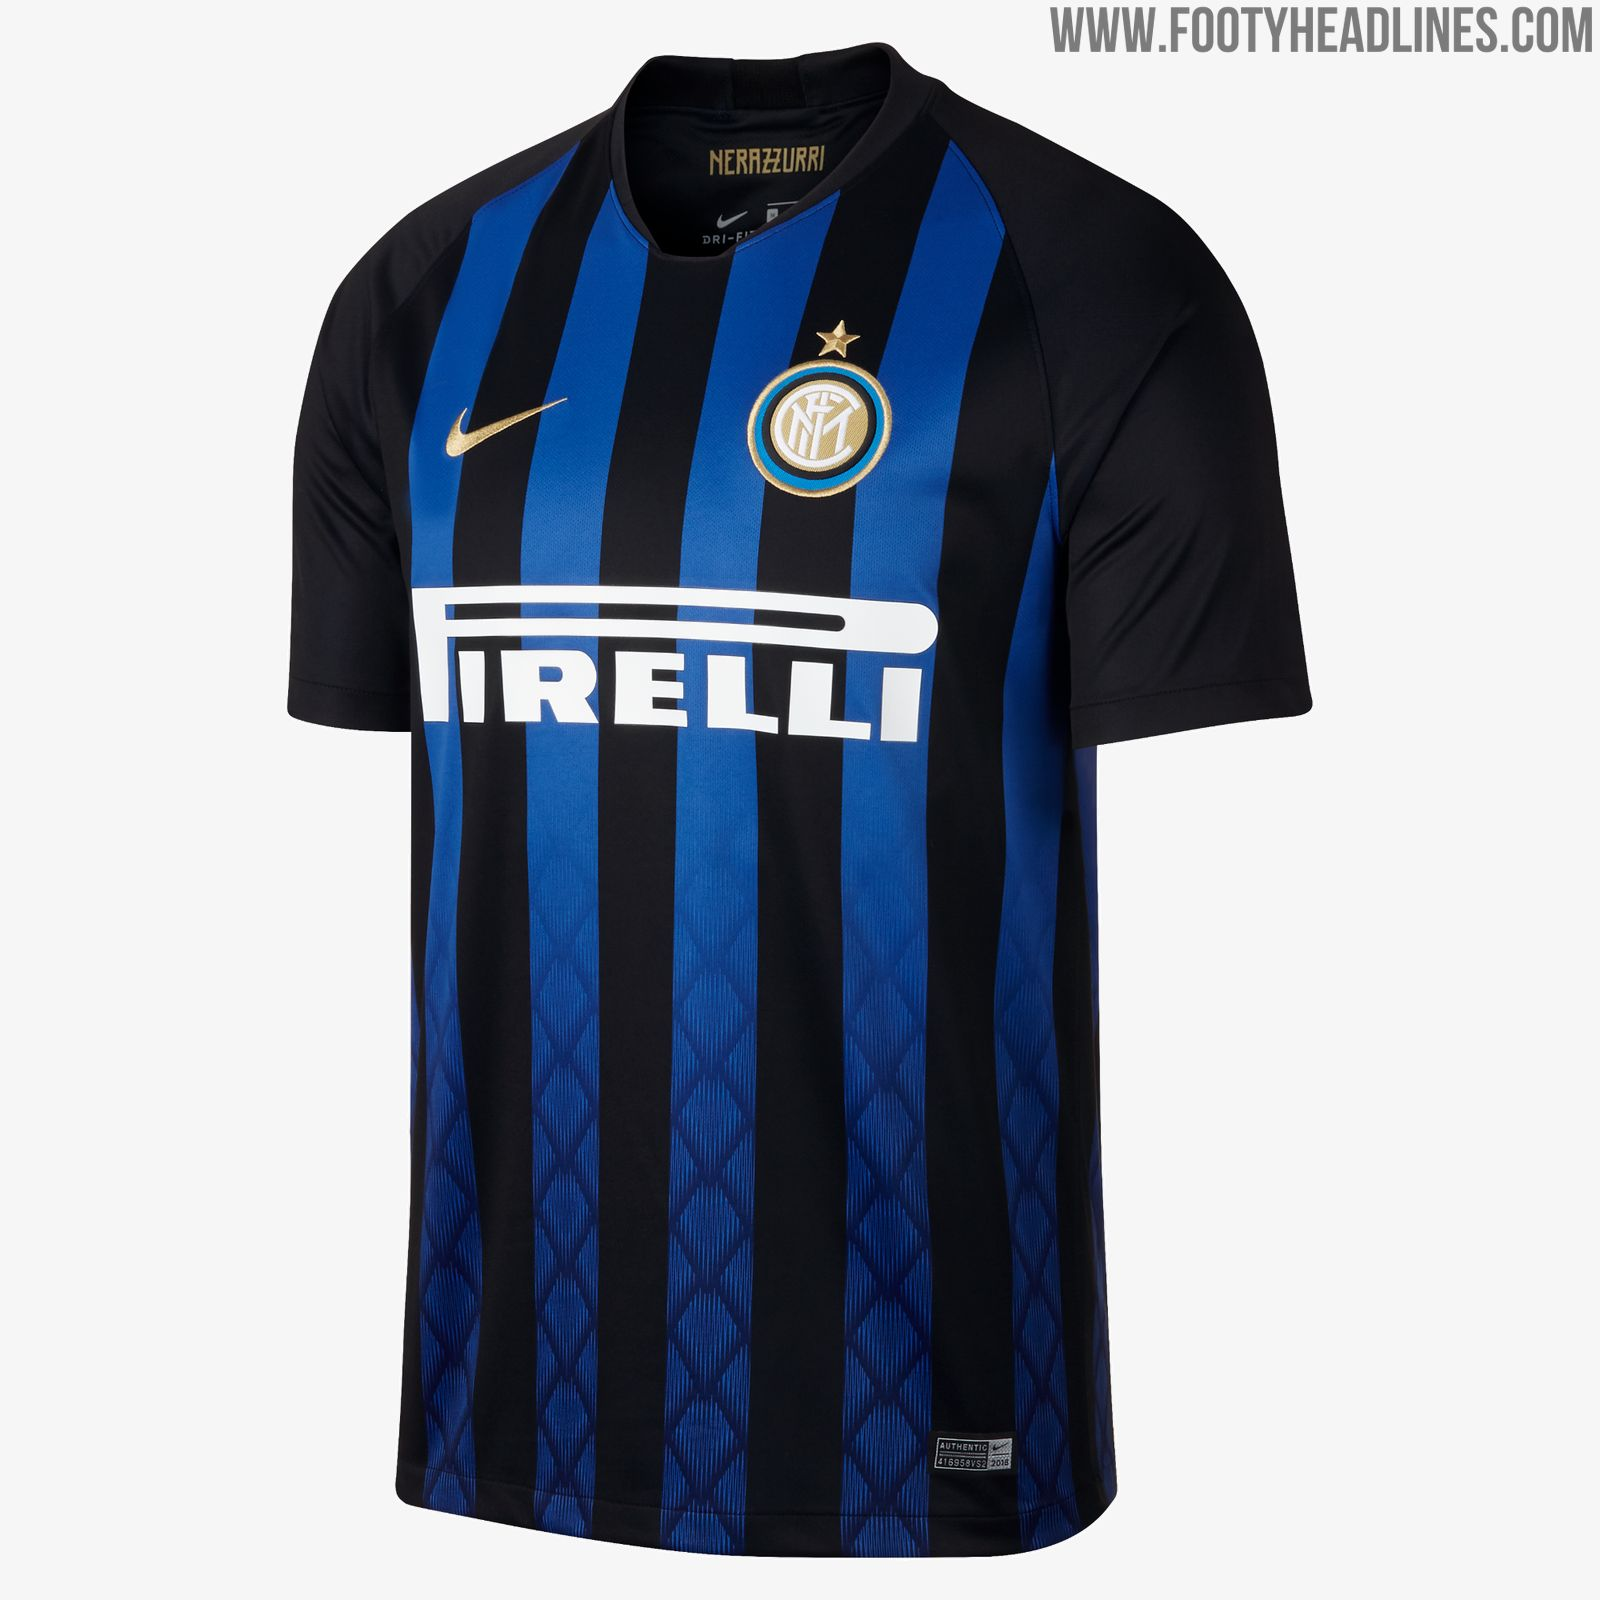 16d3fd714 Inter 18-19 Home Kit Buy now. Free worldwide delivery on all orders